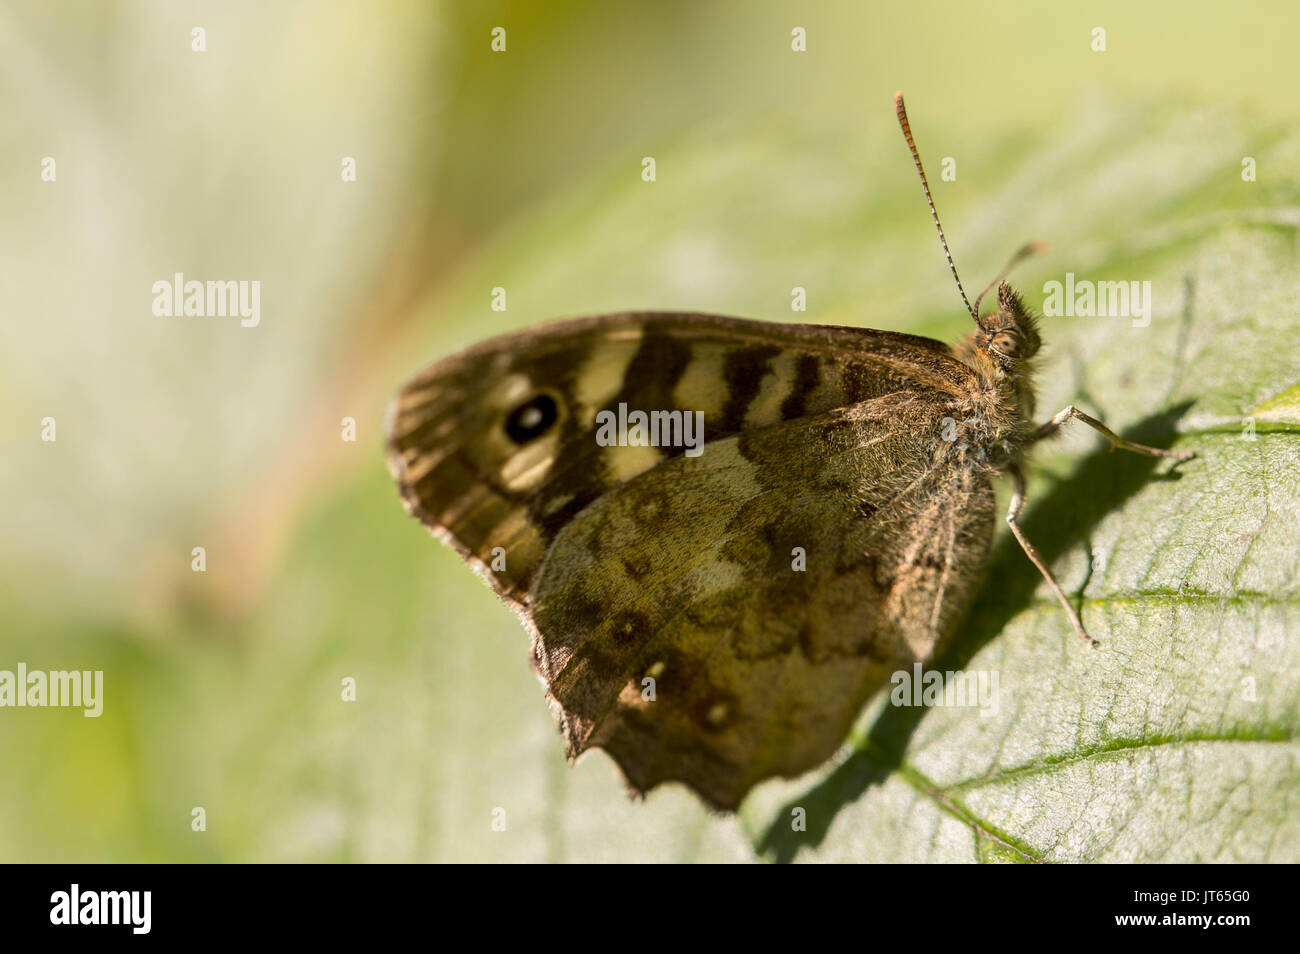 Speckled wood butterfly - Stock Image